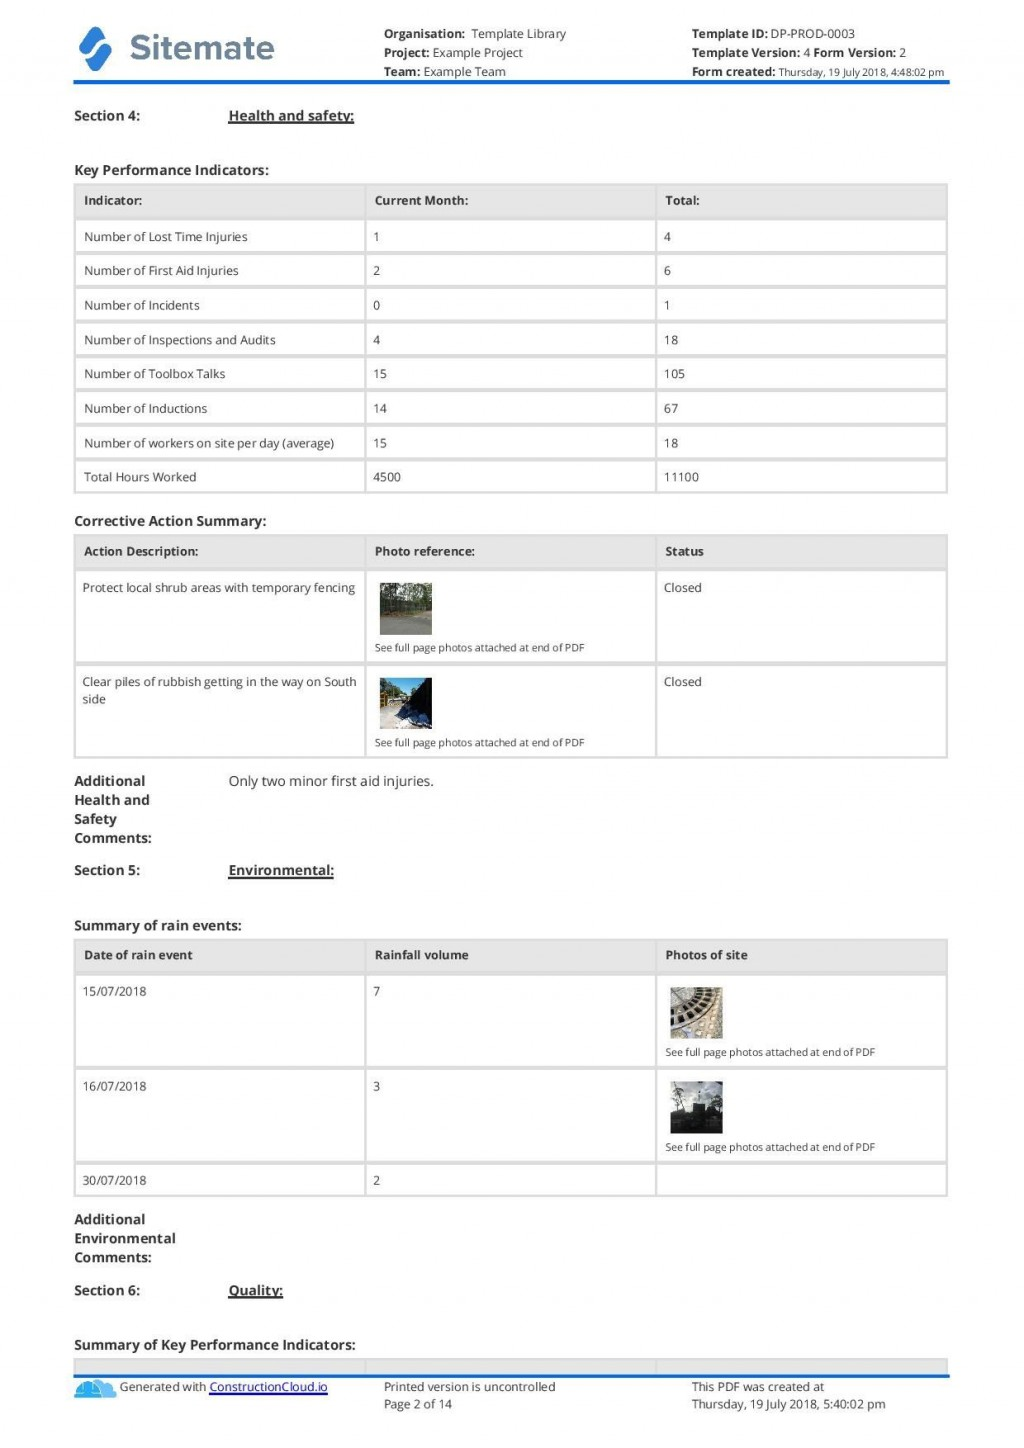 004 Awful Project Management Monthly Progres Report Template Highest Quality Large